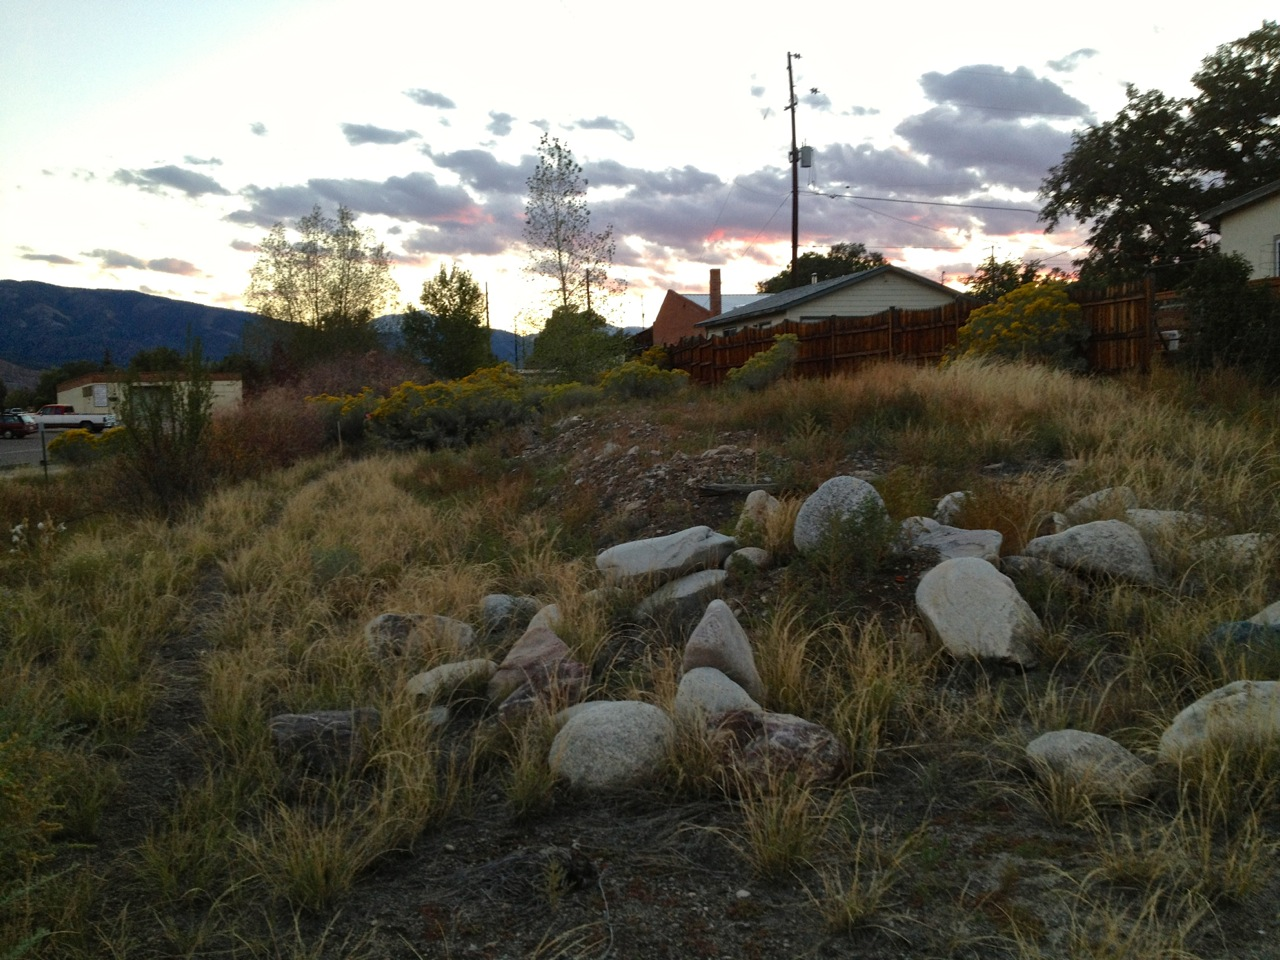 My house site before construction. (The boulders are Richard's spare sculpture materials.)